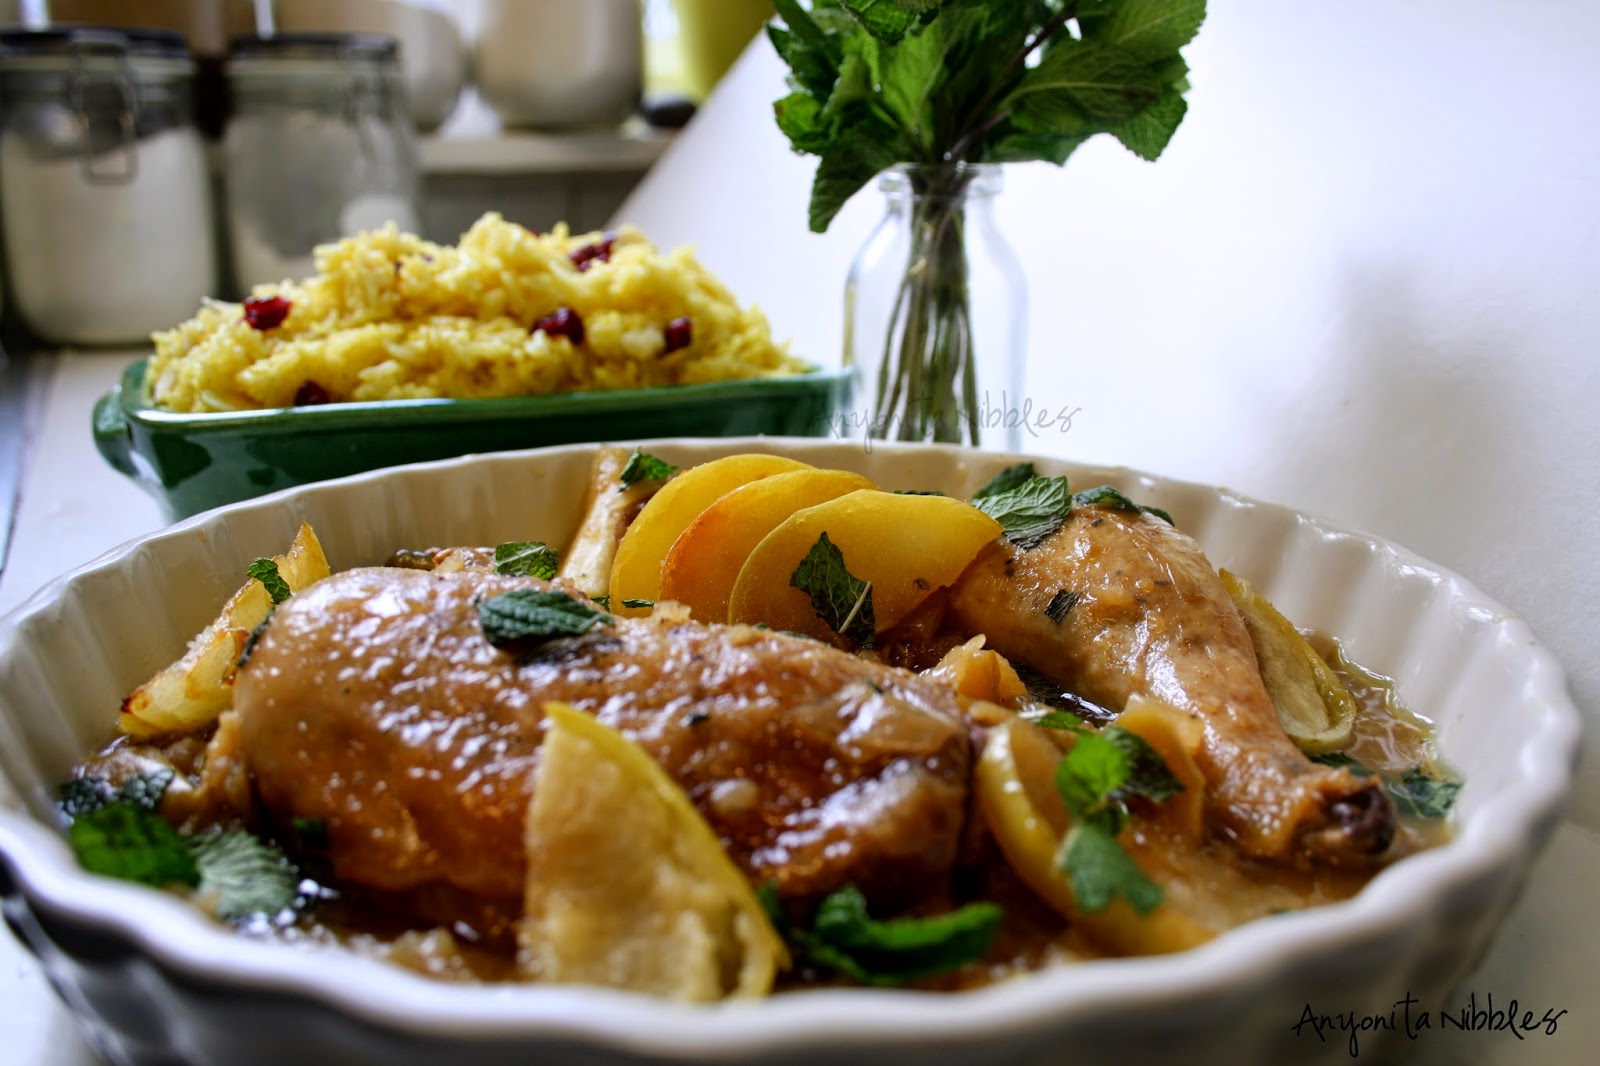 This sweet chicken dish is served with vibrant turmeric rice | Anyonita Nibbles